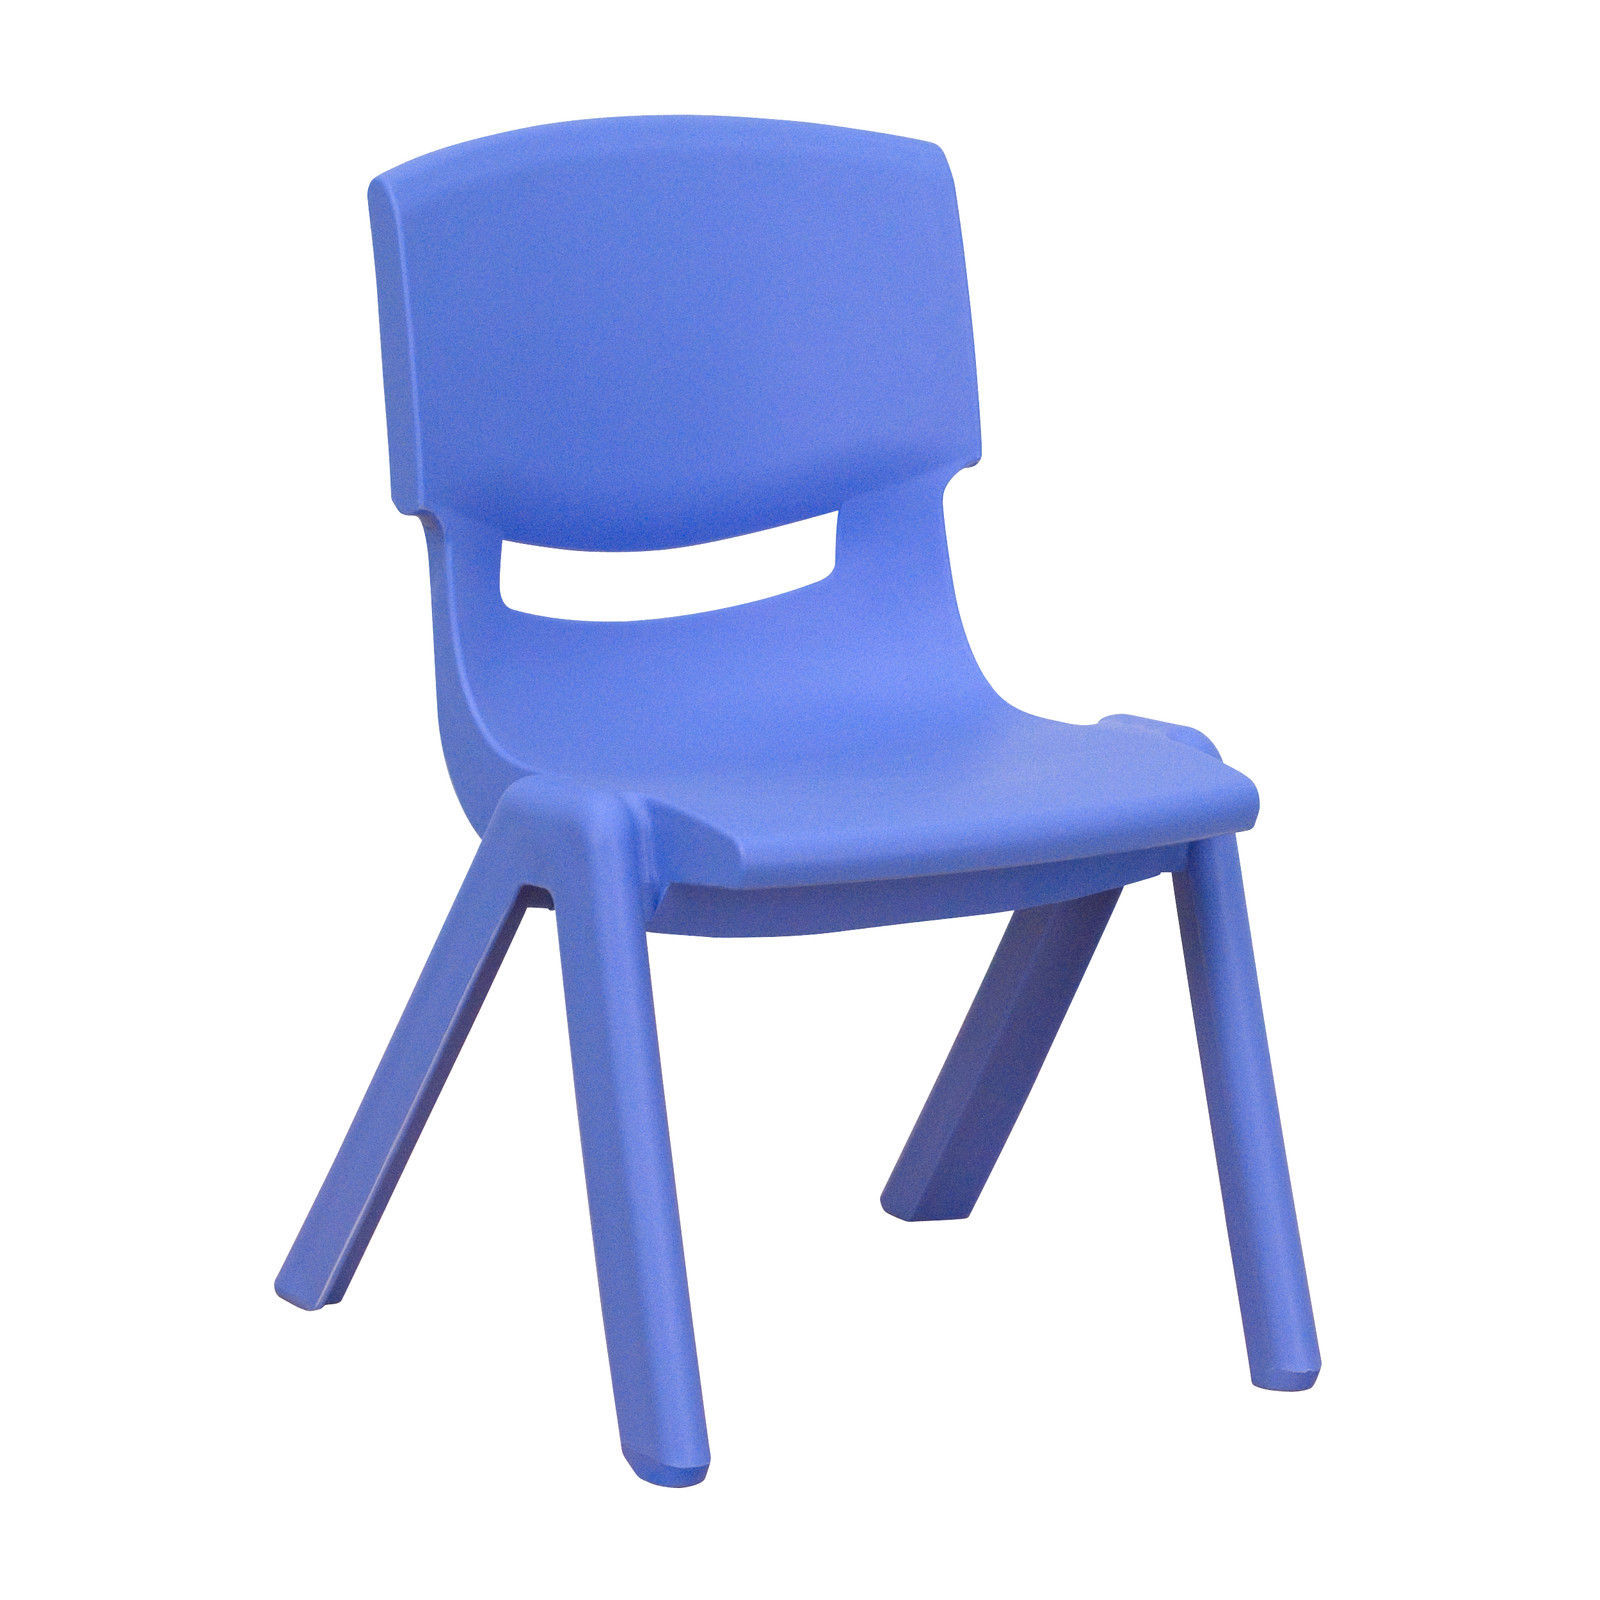 Flash Furniture Blue Plastic Stackable School Chair With 10 5 39 39 Seat Height Chairs